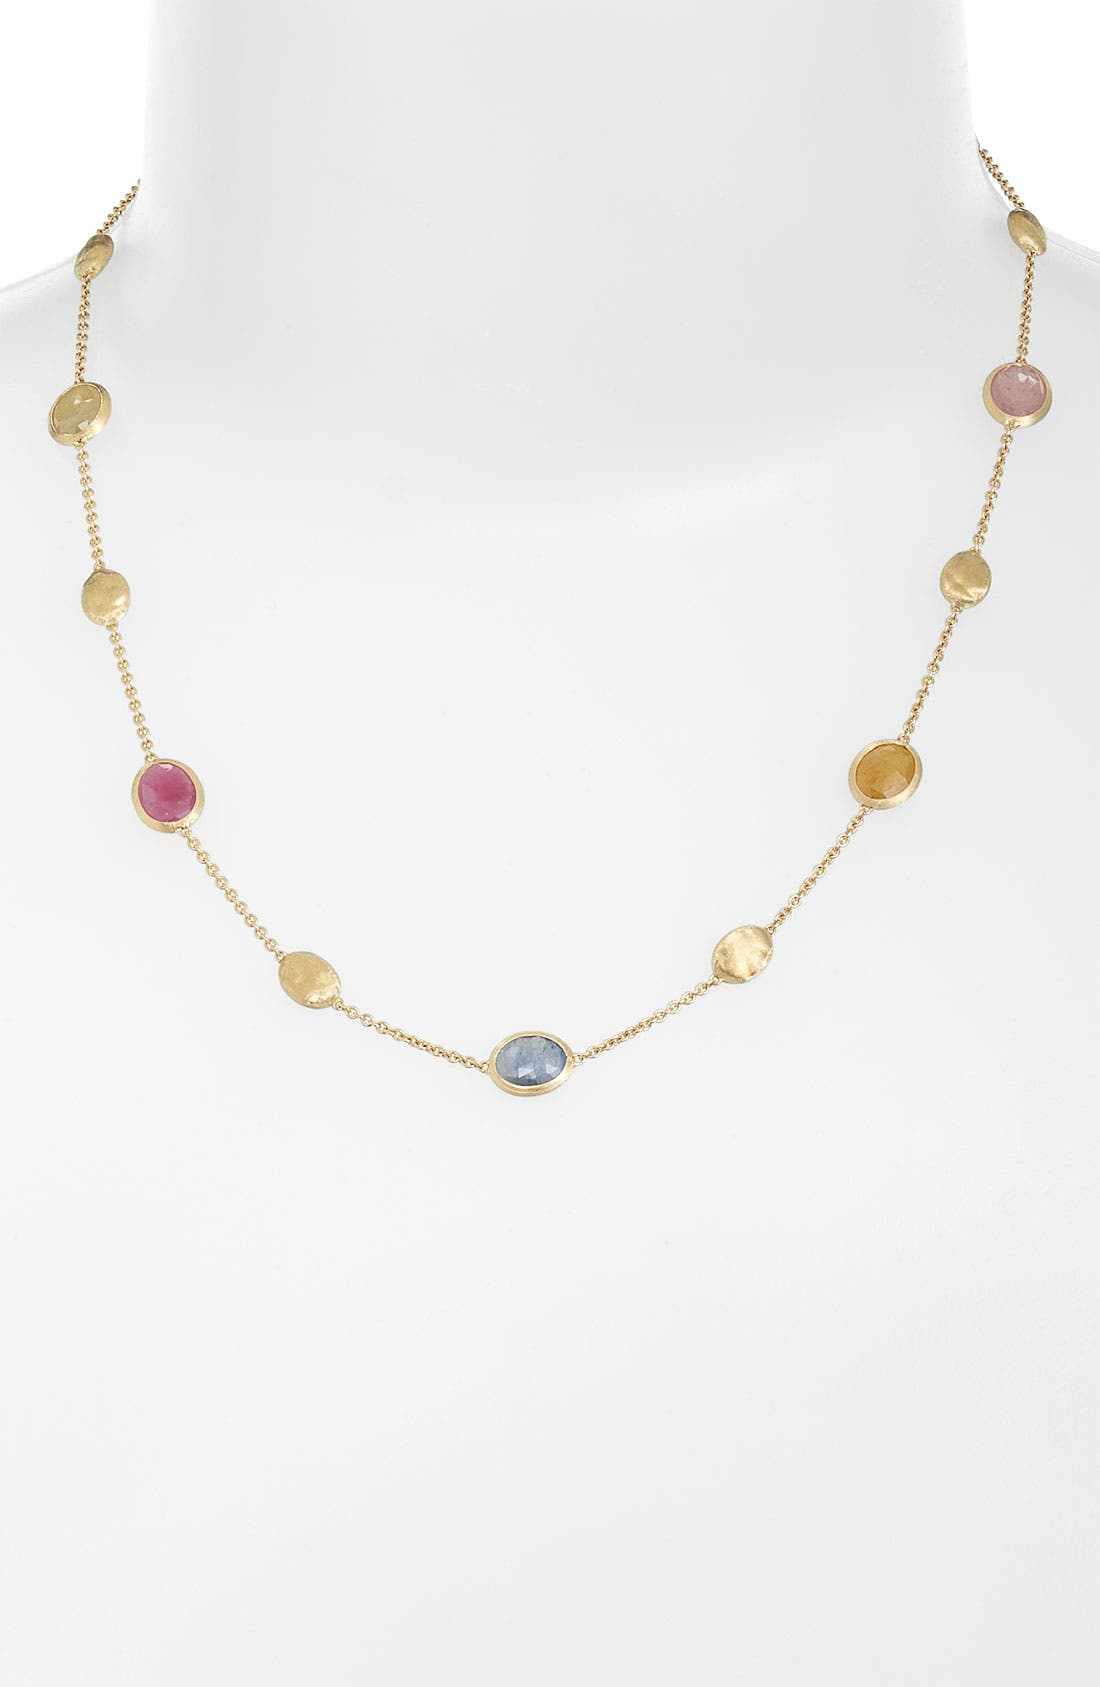 Main Image - Marco Bicego 'Sivilgia' Mixed Sapphire Necklace